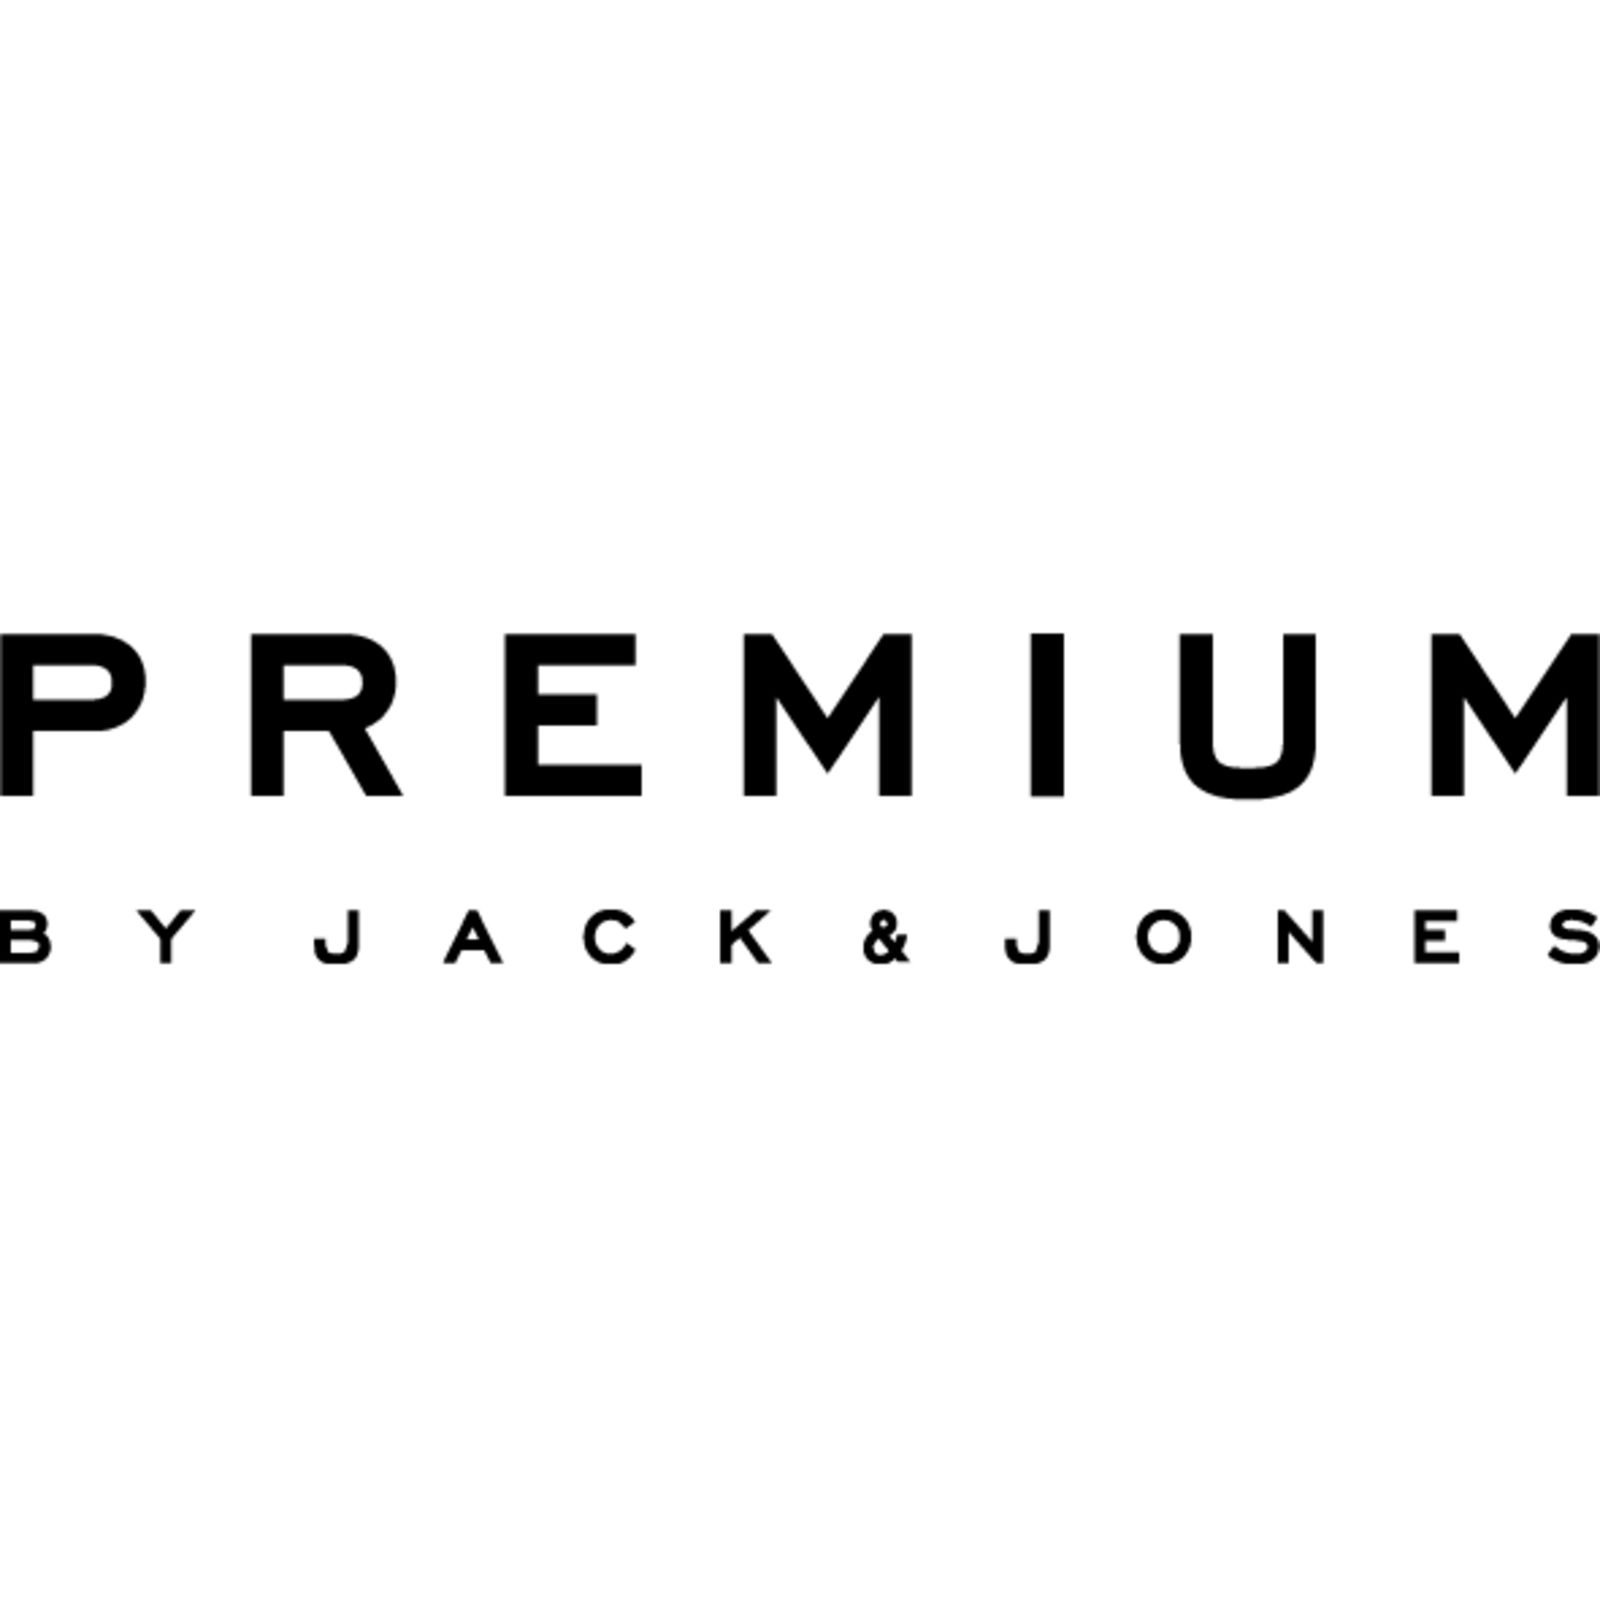 PREMIUM by JACK & JONES (Image 1)